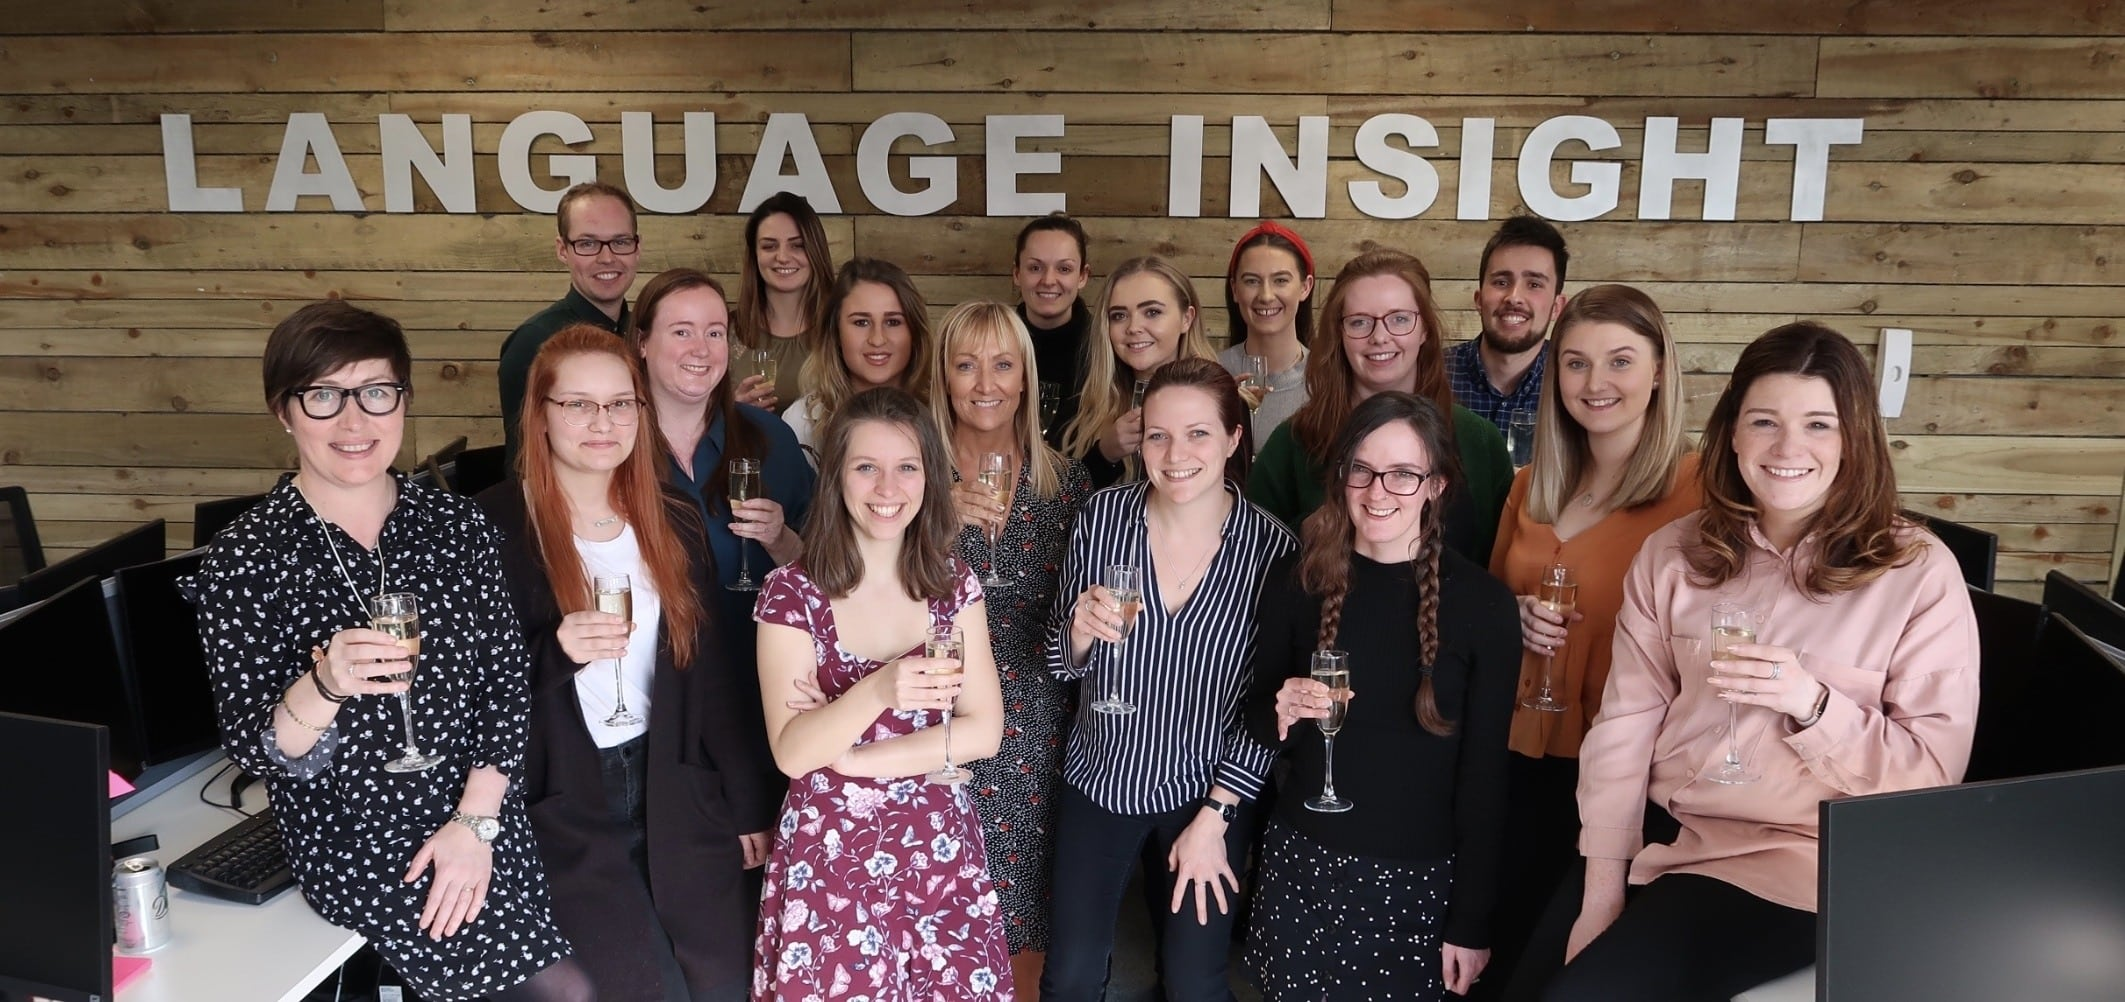 Language Insight team celebrating Language Insight's win of The Queen's Award 2019